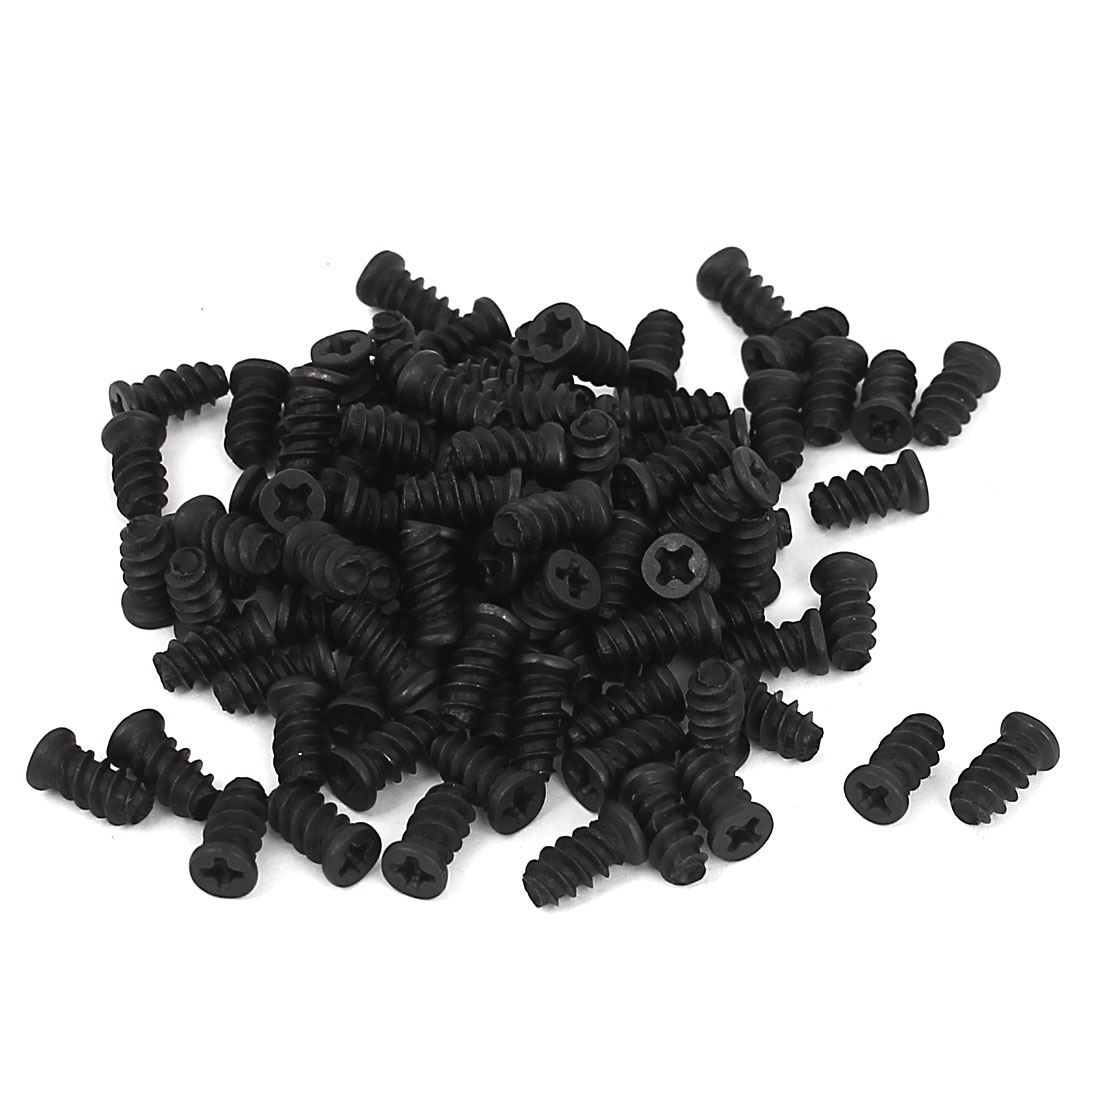 Computer PC Case Cooling Fan Mount Screws Black 10mm x 5mm 100pcs for Fans